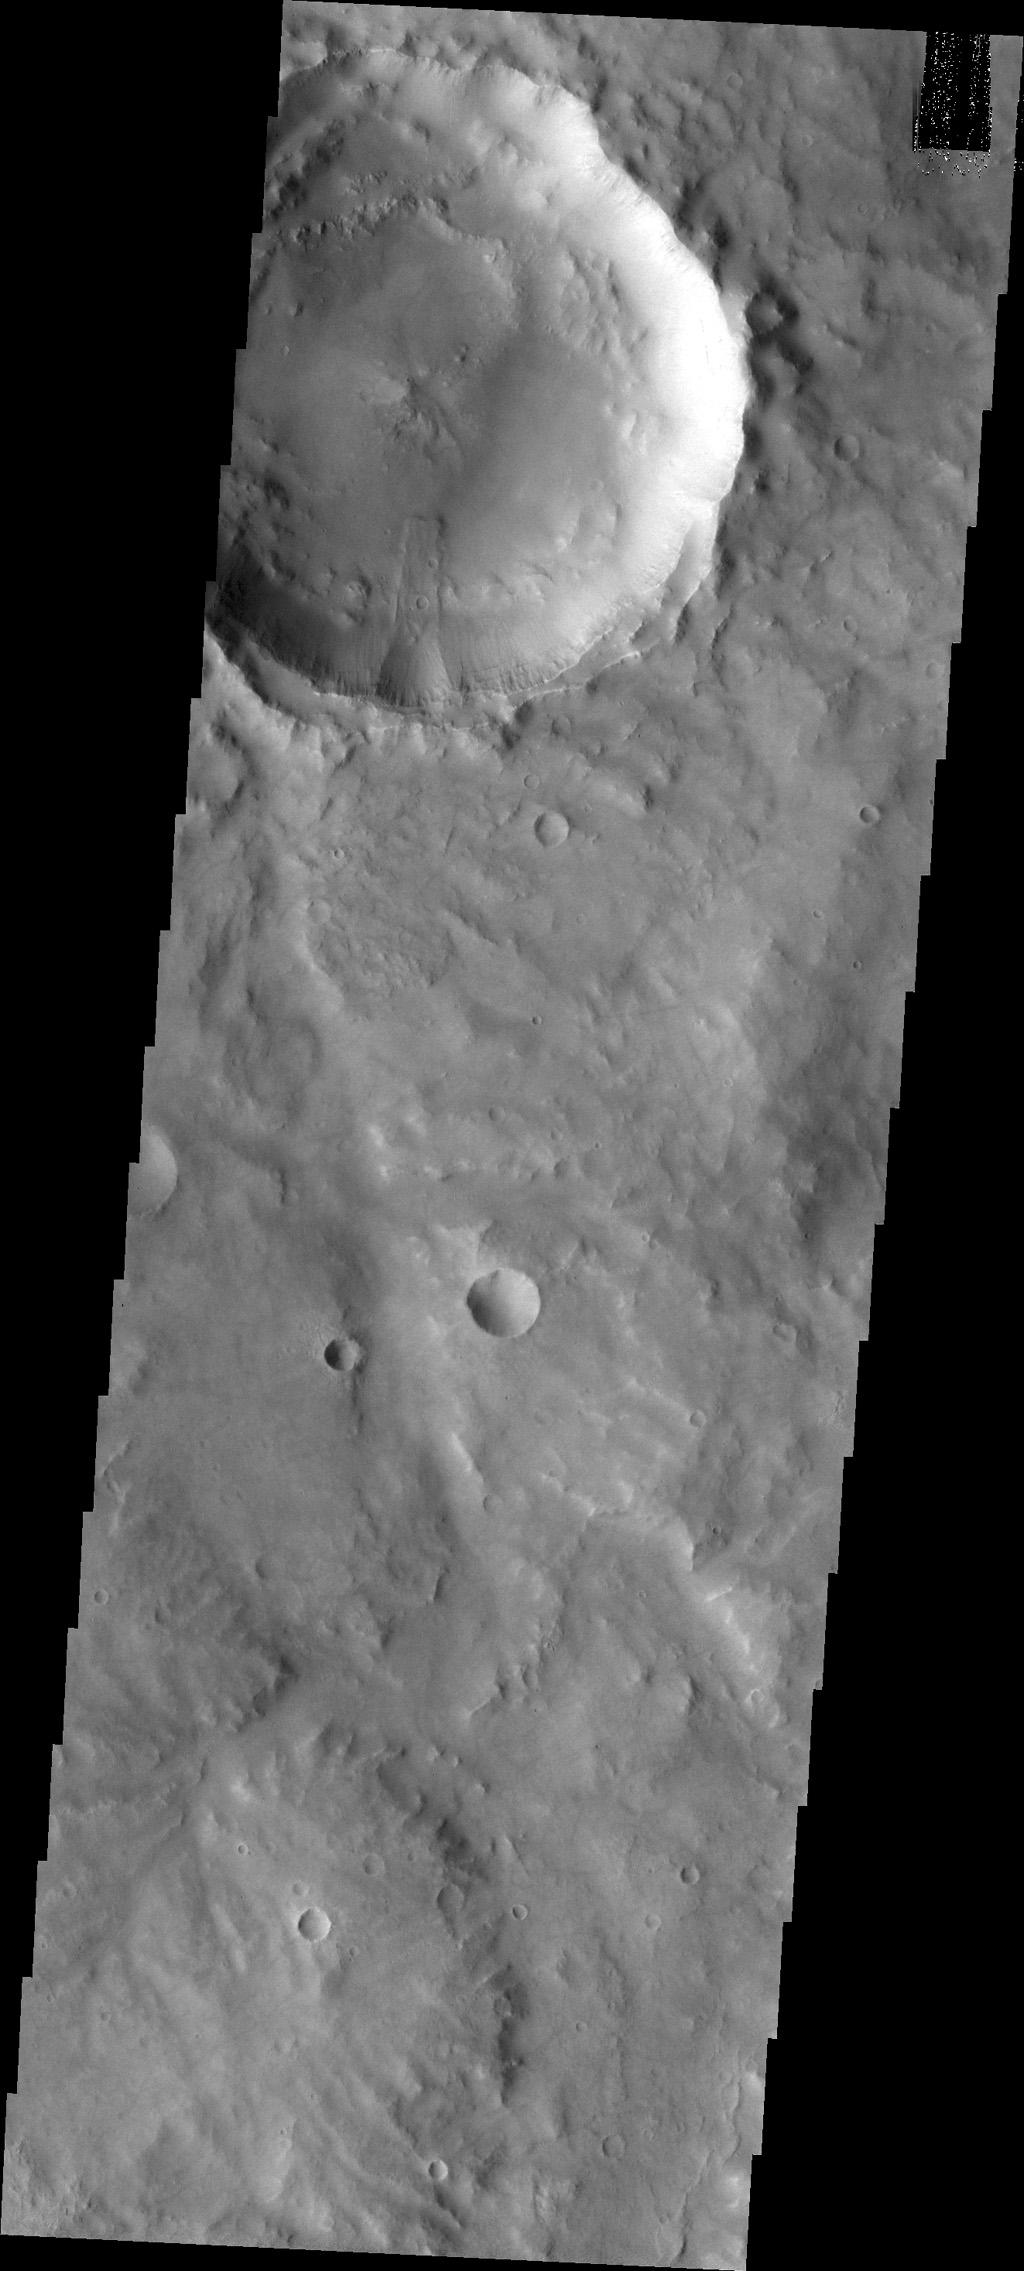 A landslide occurred from the rim of this unnamed crater in Margaritifer Terra as seen by NASA's Mars Odyssey.